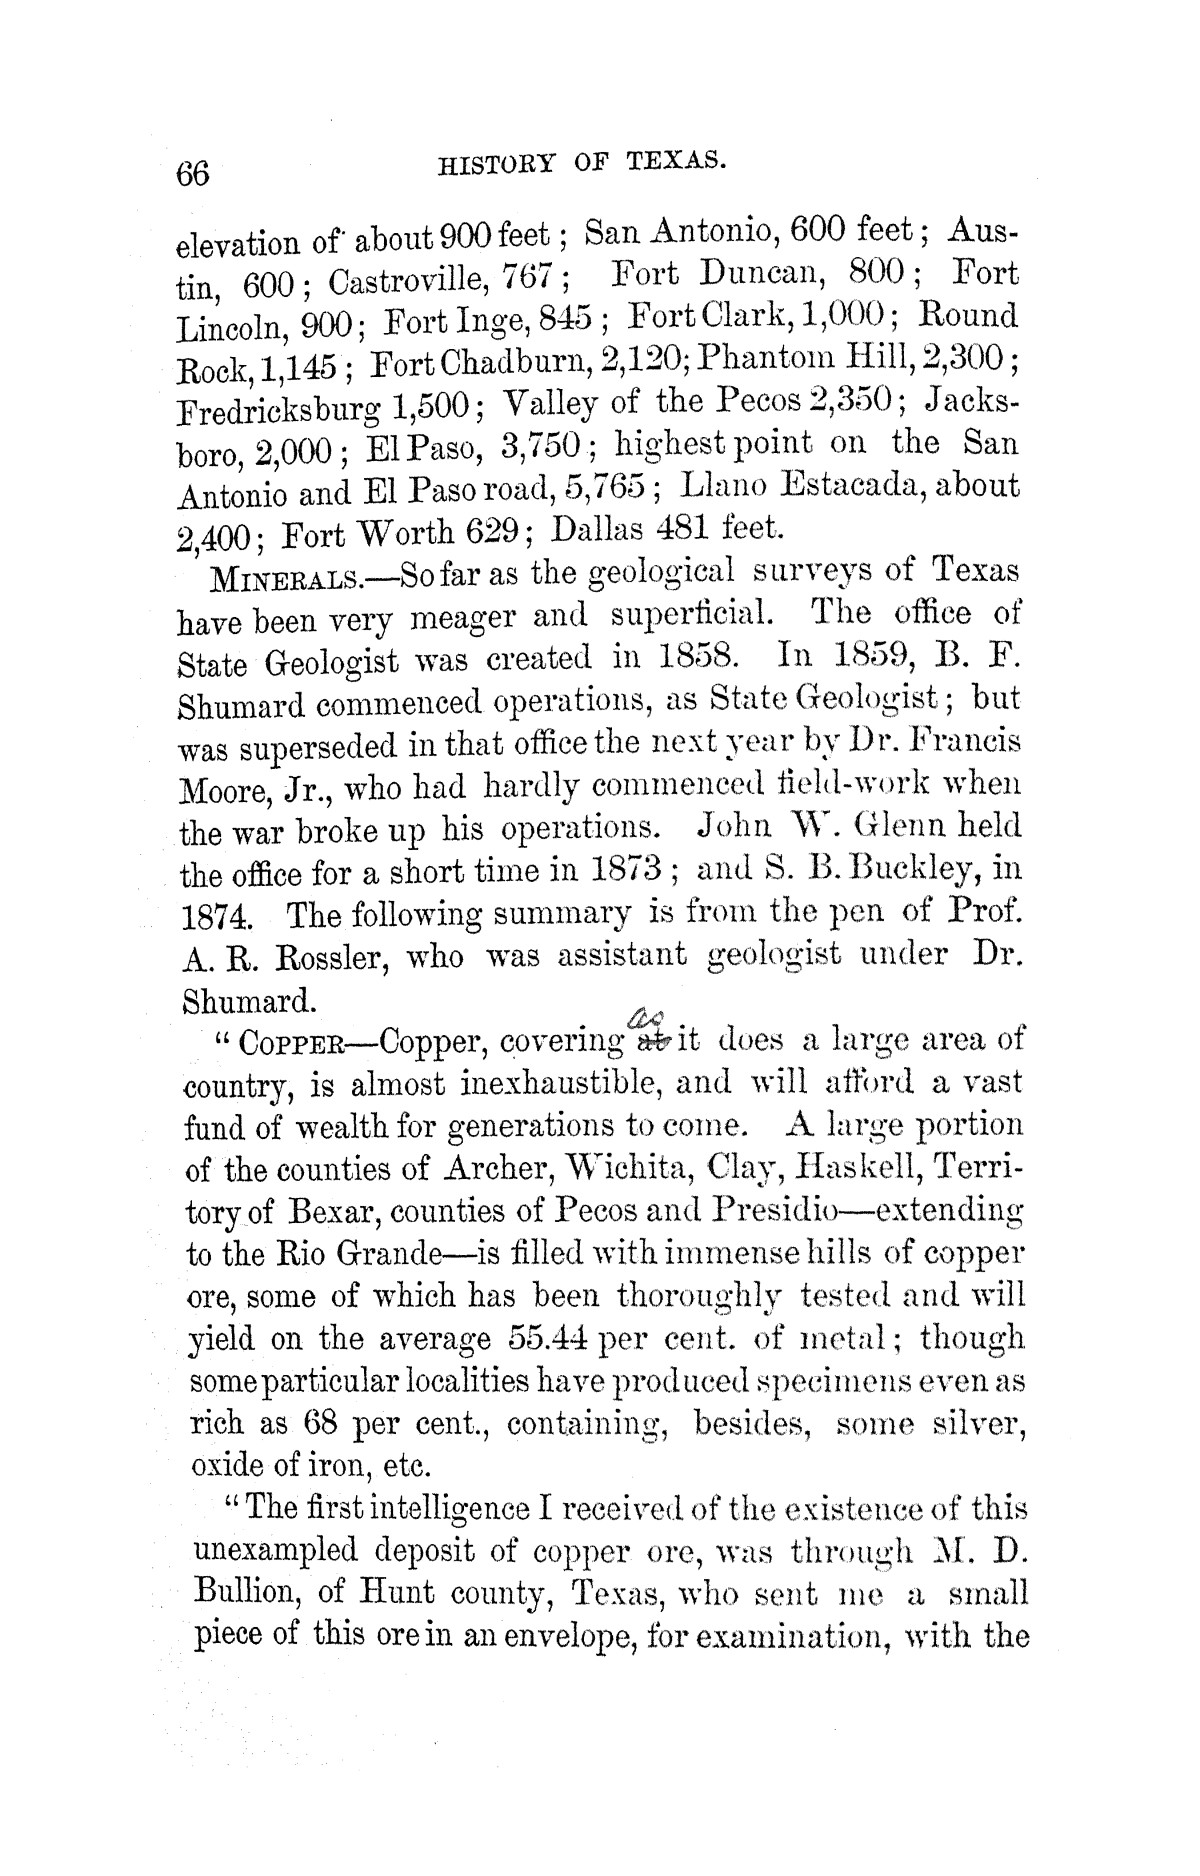 A pictorial history of Texas, from the earliest visits of European adventurers, to A.D. 1879. Embracing the periods of missions, colonization, the revolution the republic, and the state; also, a topographical description of the country ... together with its Indian tribes and their wars, and biographical sketches of hundreds of its leading historical characters. Also, a list of the countries, with historical and topical notes, and descriptions of the public institutions of the state.                                                                                                      [Sequence #]: 72 of 859